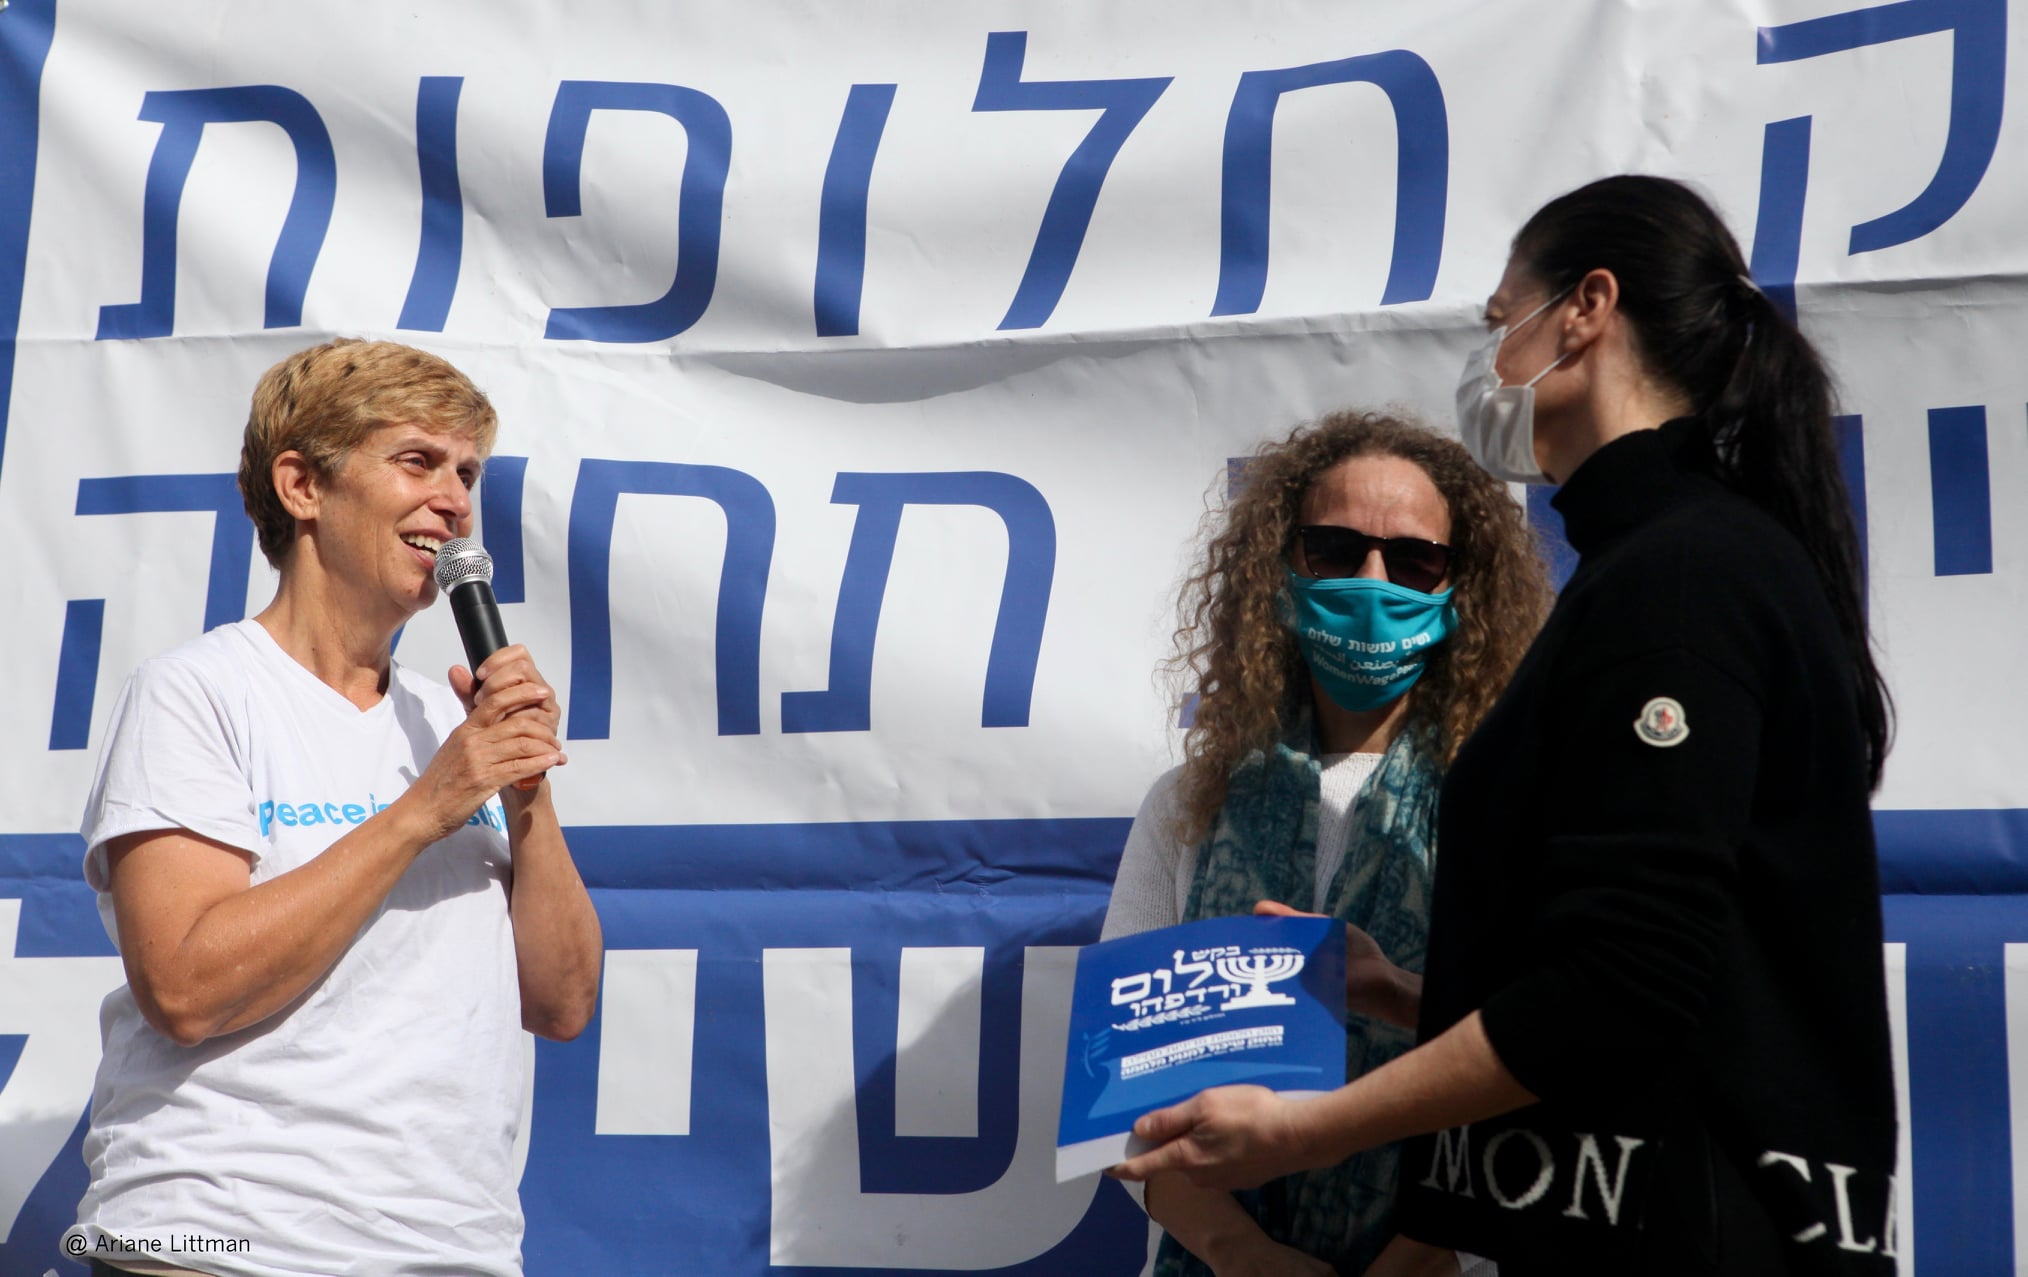 The bill Political Alternatives First – was presented to the Knesset.